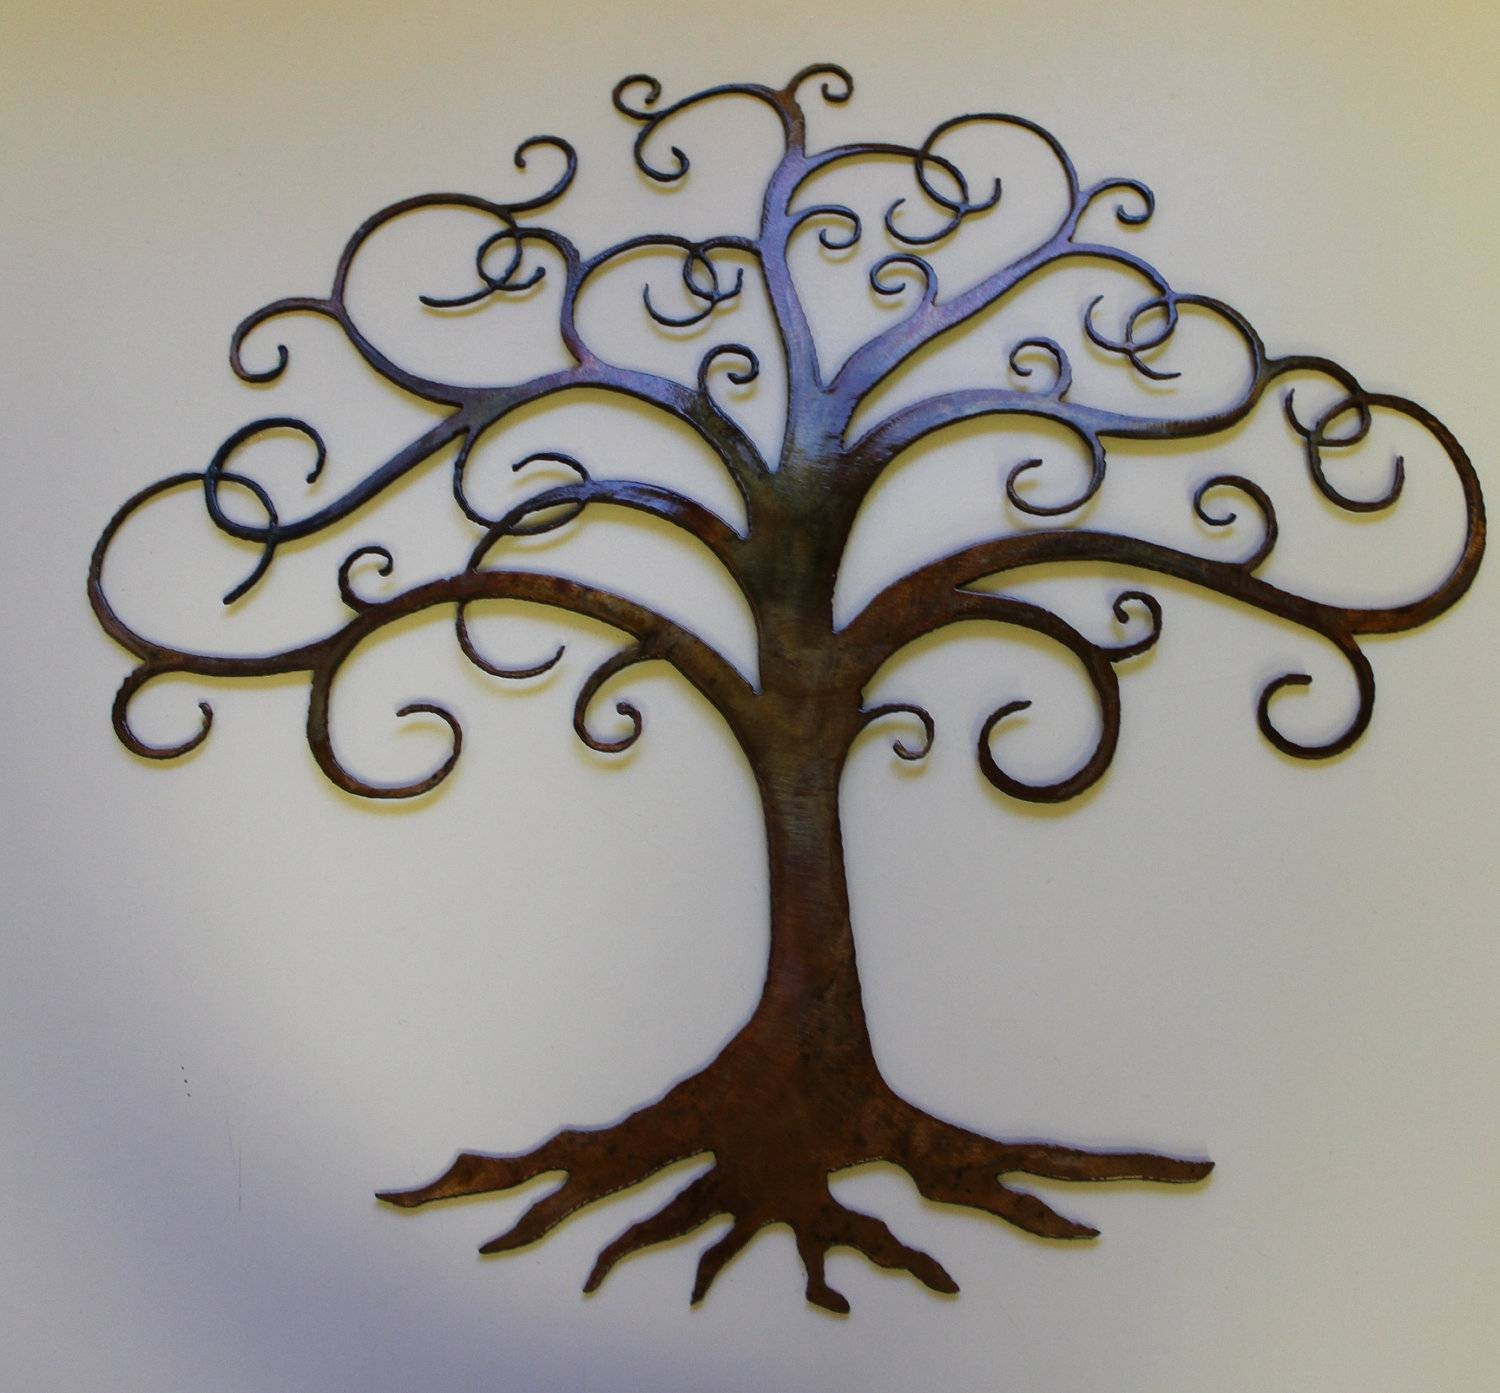 Wall Art Designs: Metal Wall Art Trees Breathtaking Large Metal With Best And Newest Large Metal Art (View 19 of 20)